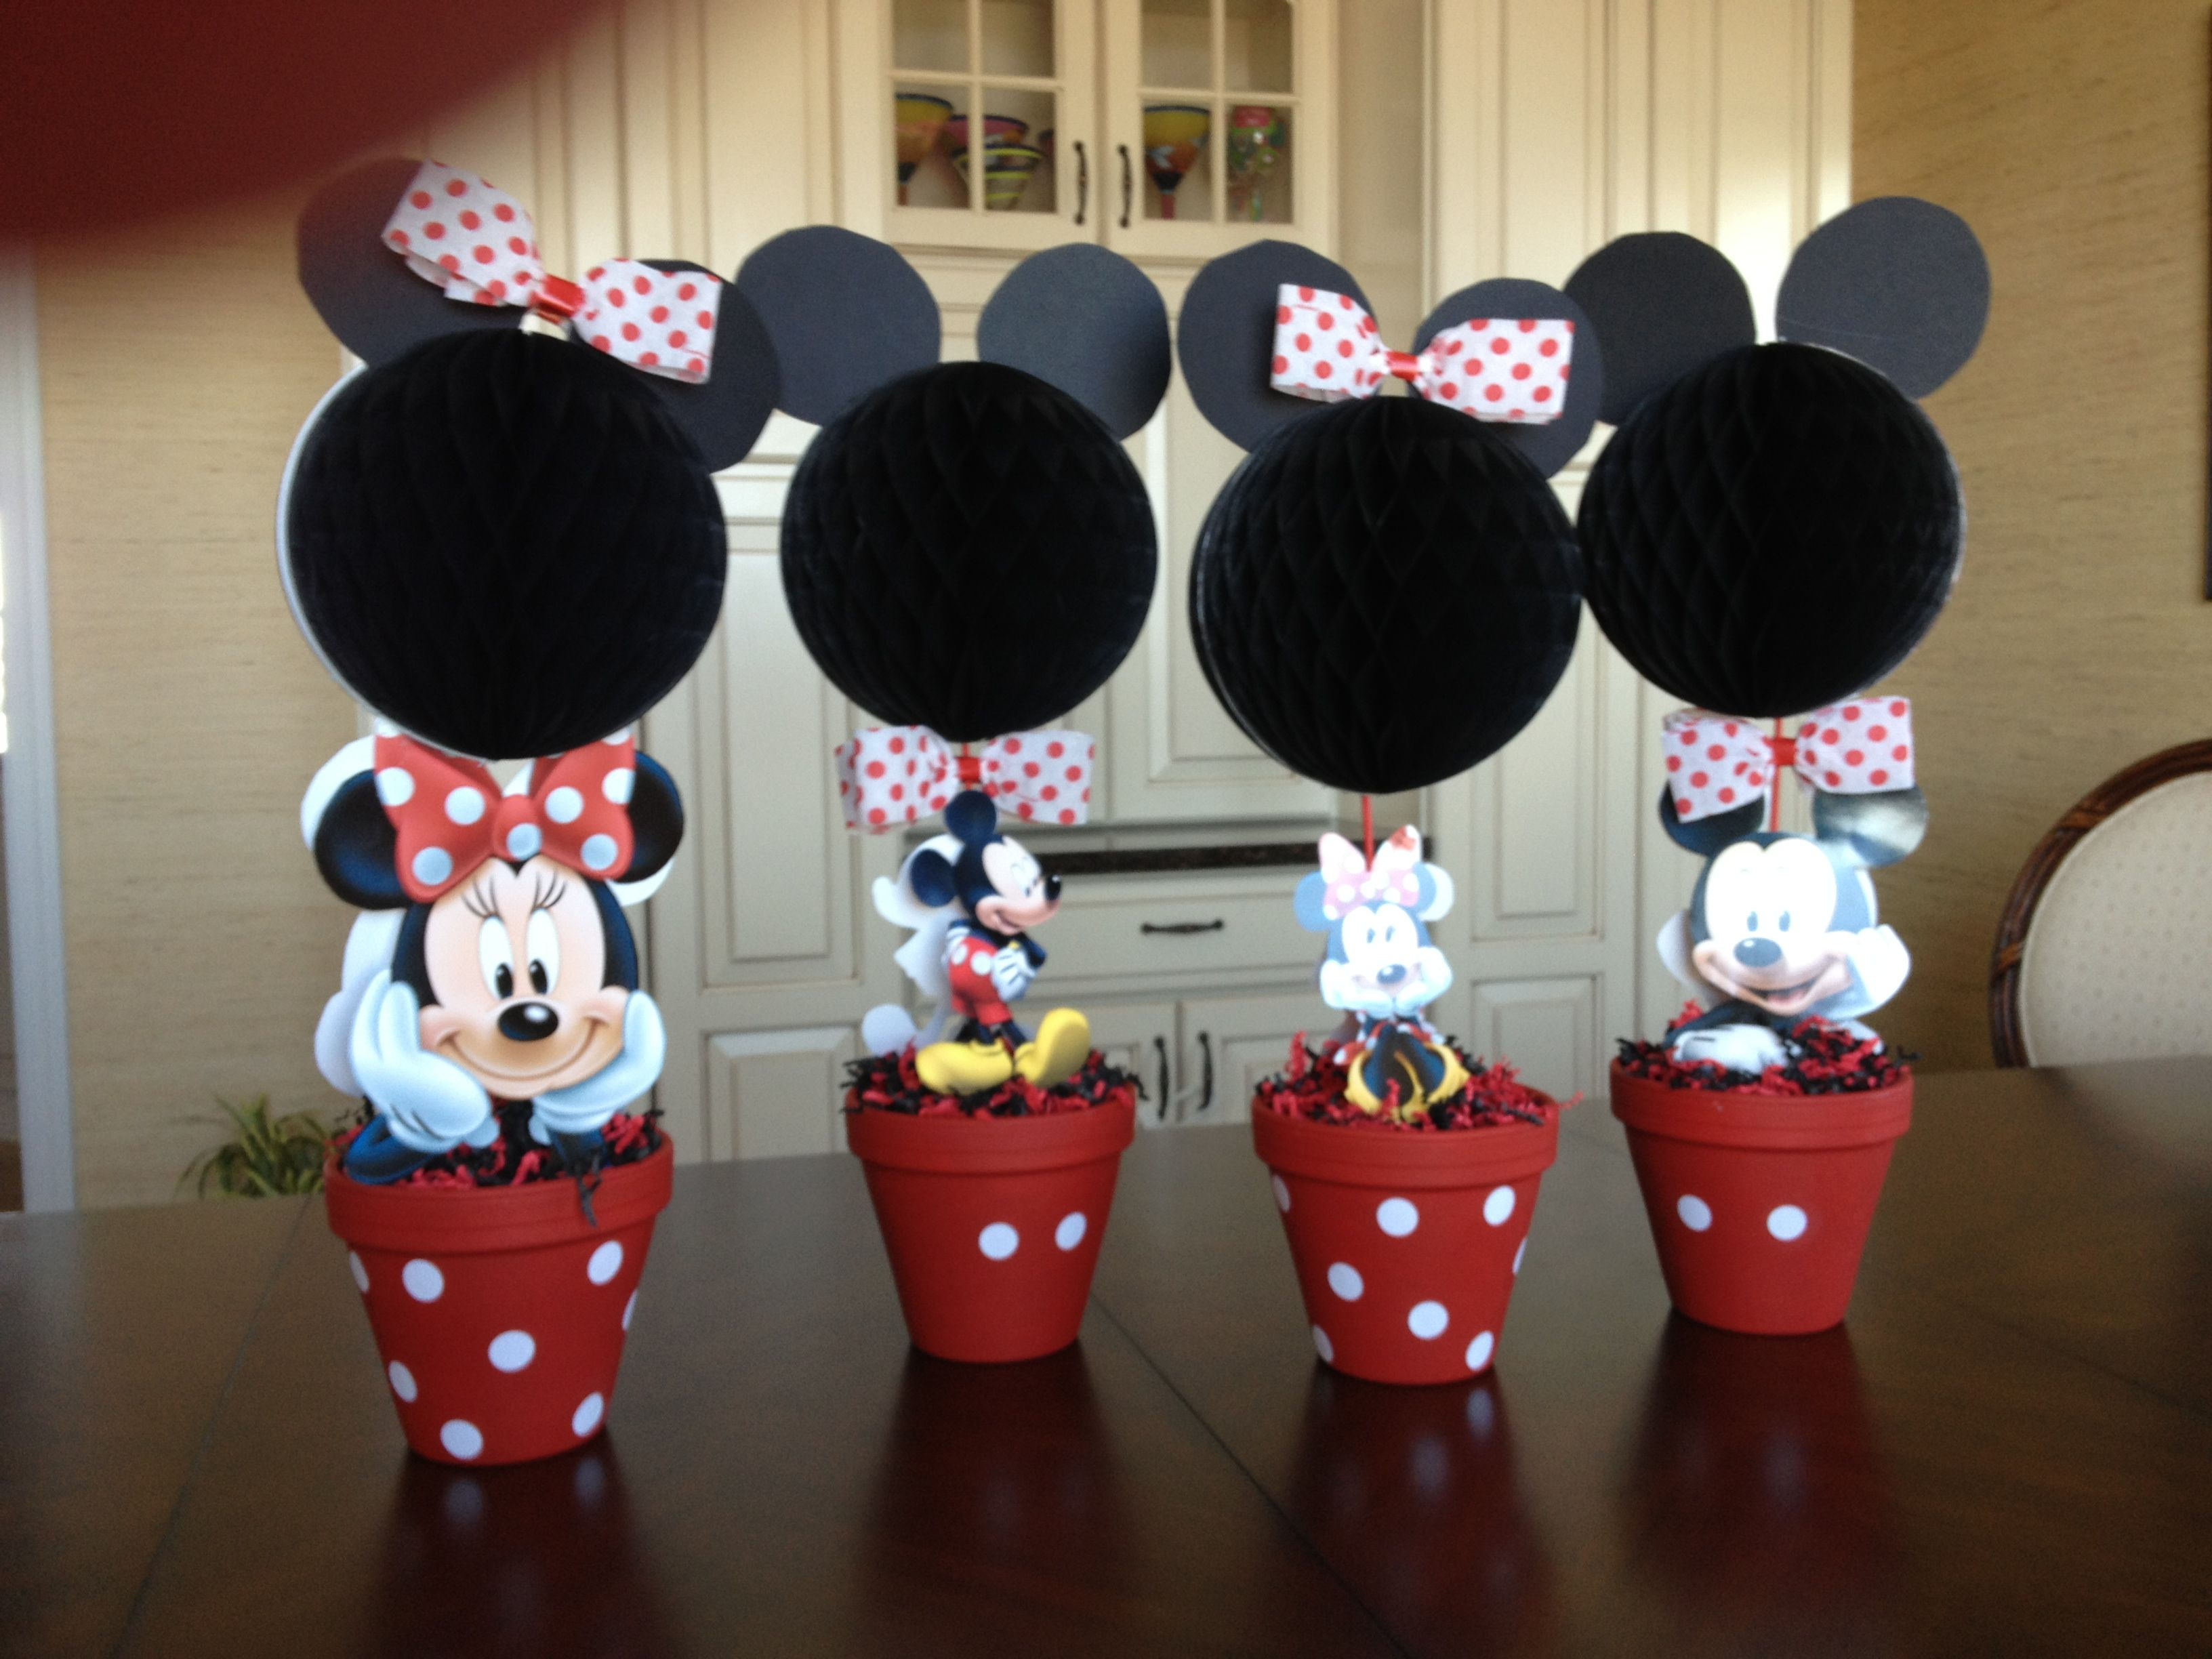 Disney Theme Decorations Centerpieces For Disney Themed Birthday Party Birthday Party